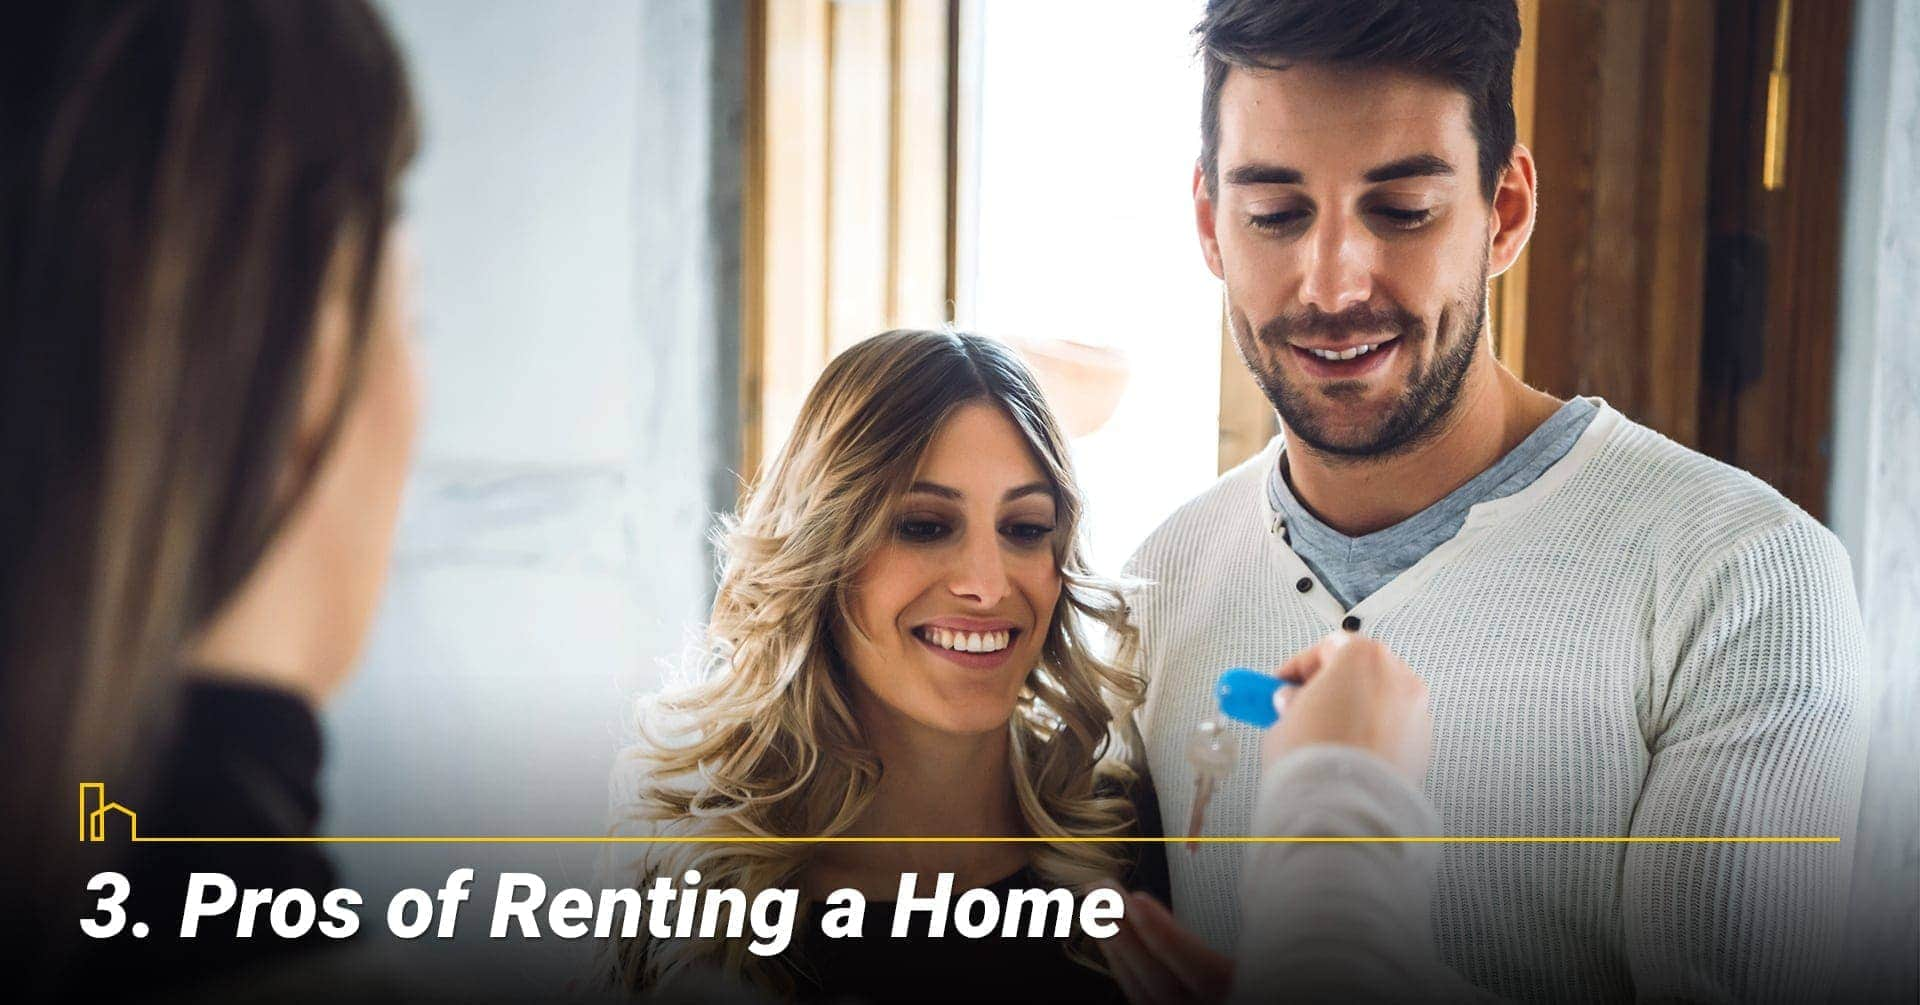 Pros of Renting a Home, advantages of rent out your home